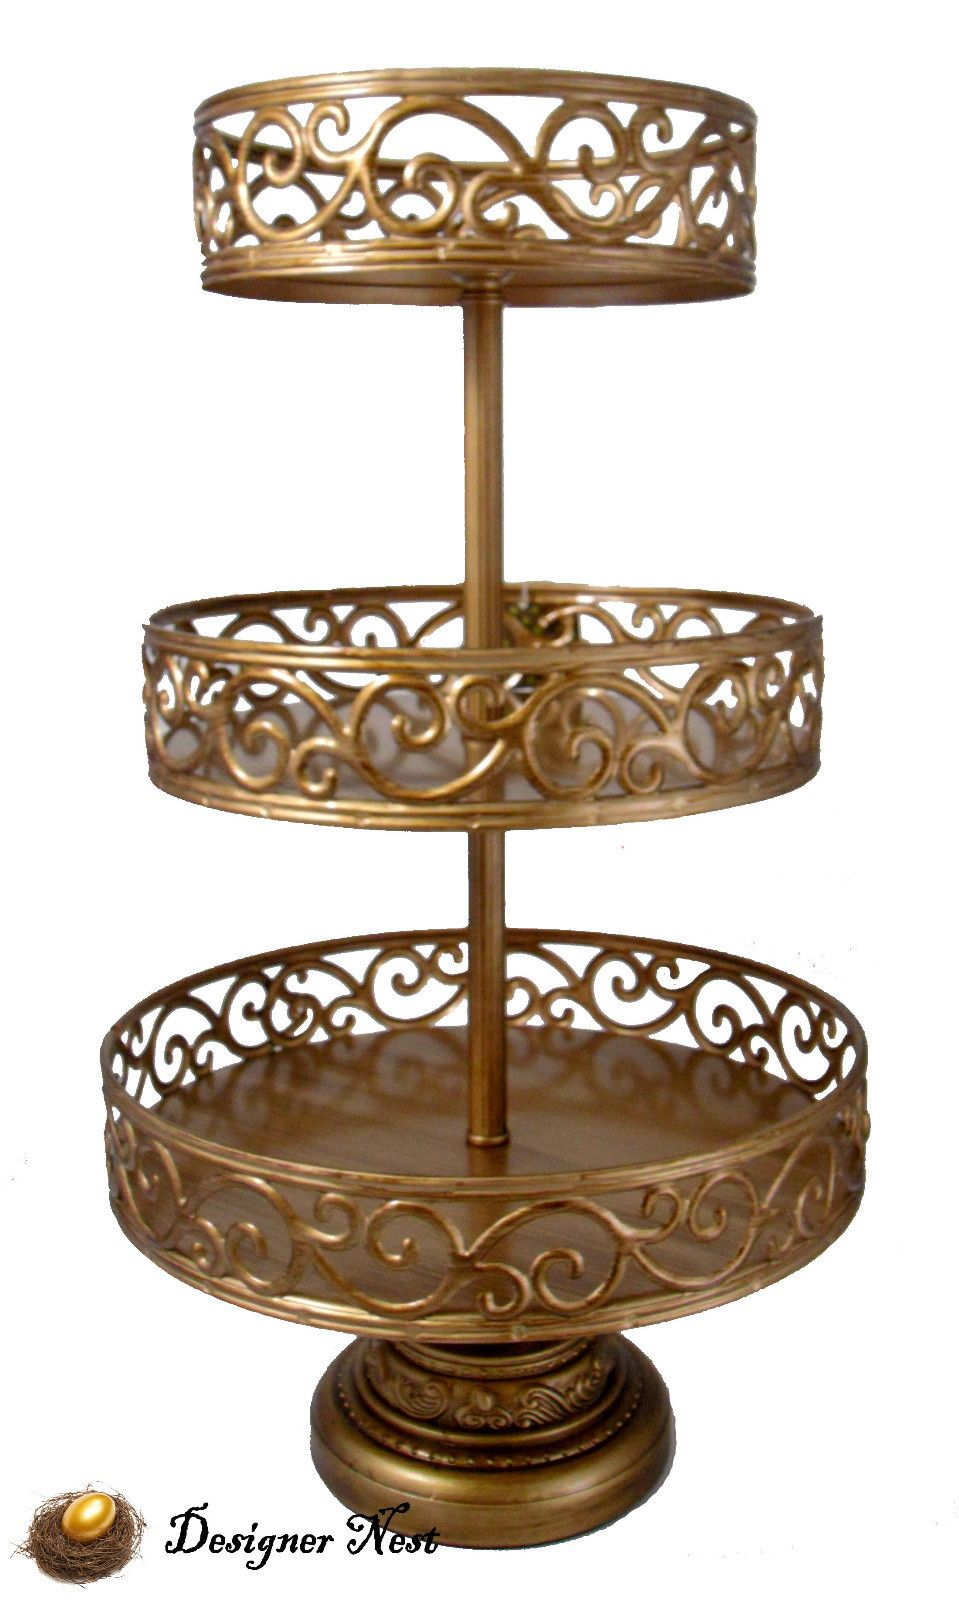 metal cake stand gold vintage style cake pedestal cupcake stand 3 tier 5843